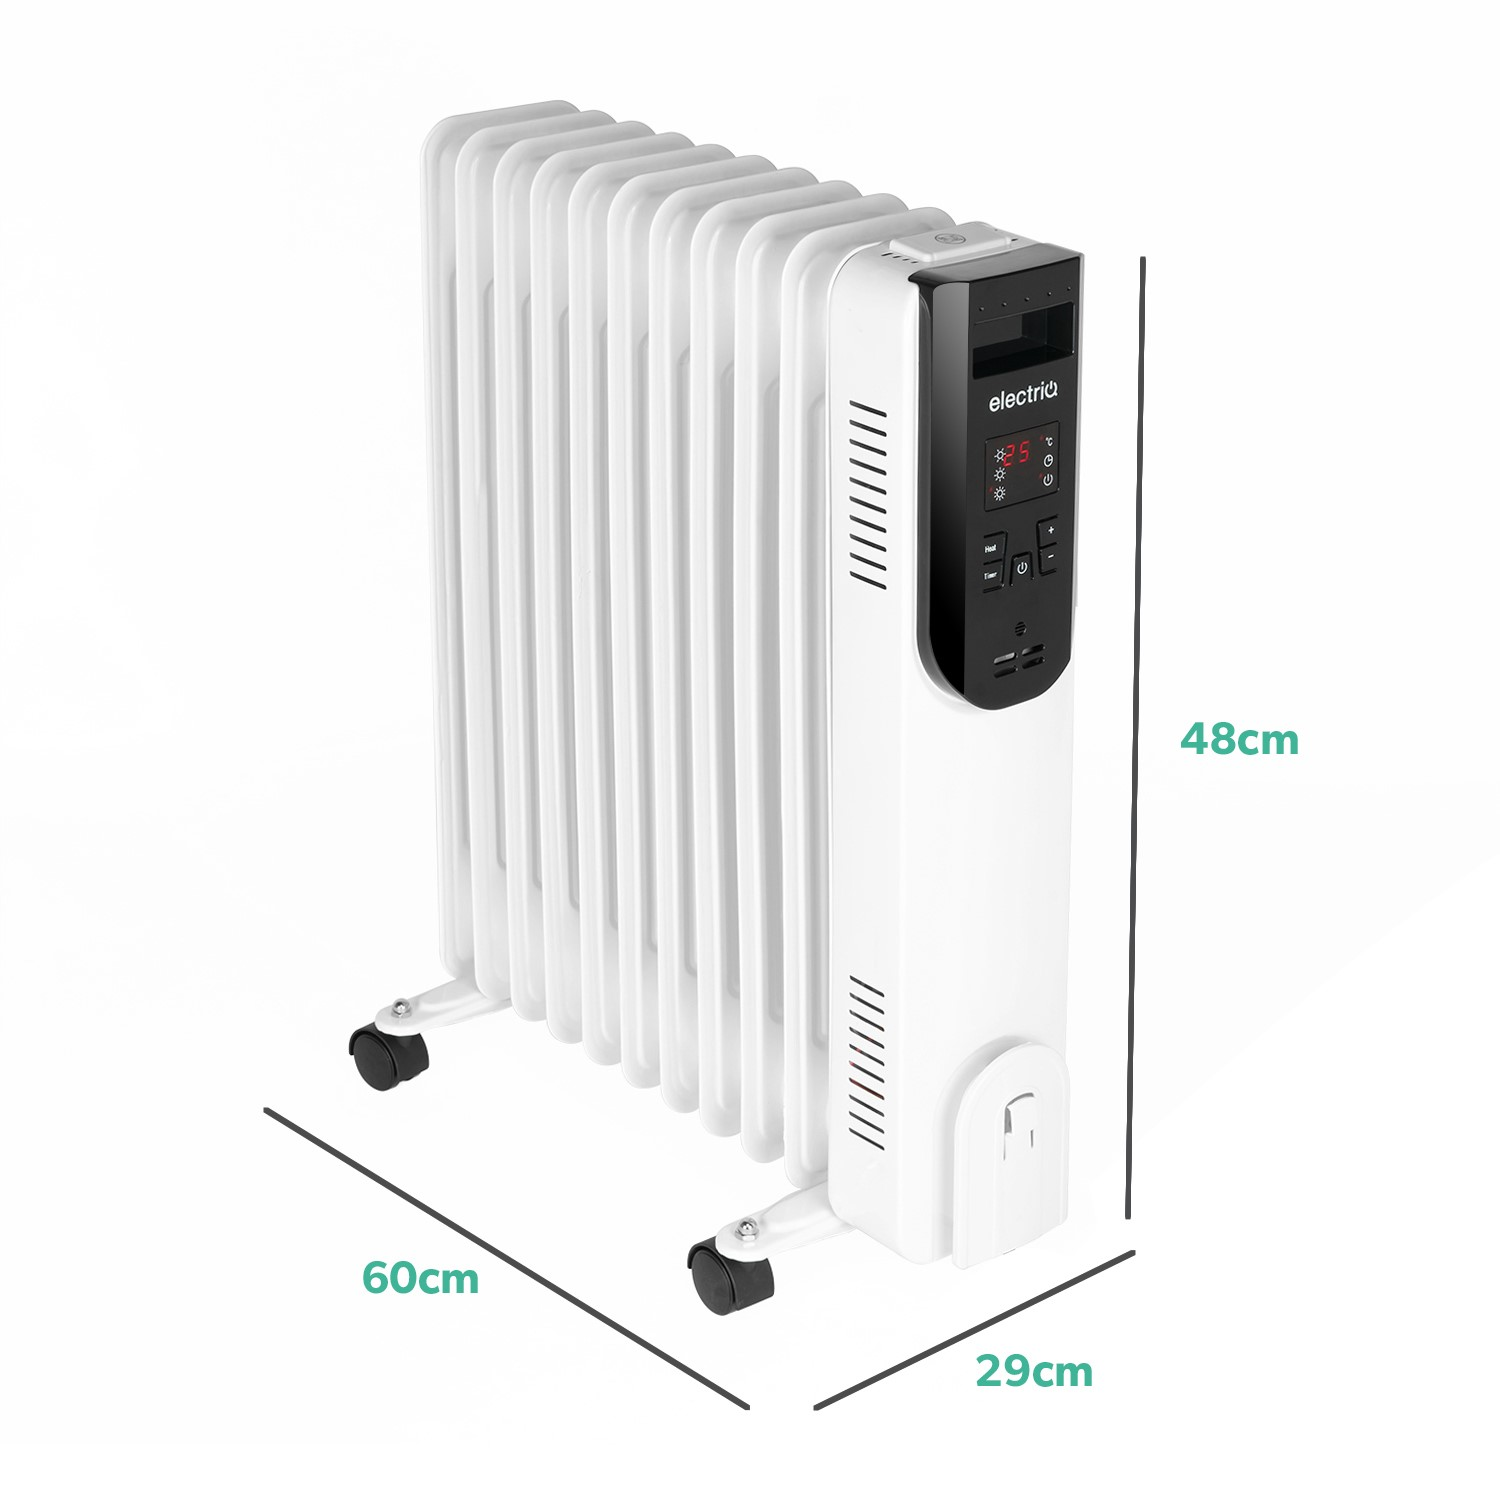 24 Hr Timer Programmable Thermostat Digital Radiator Heater With Remote